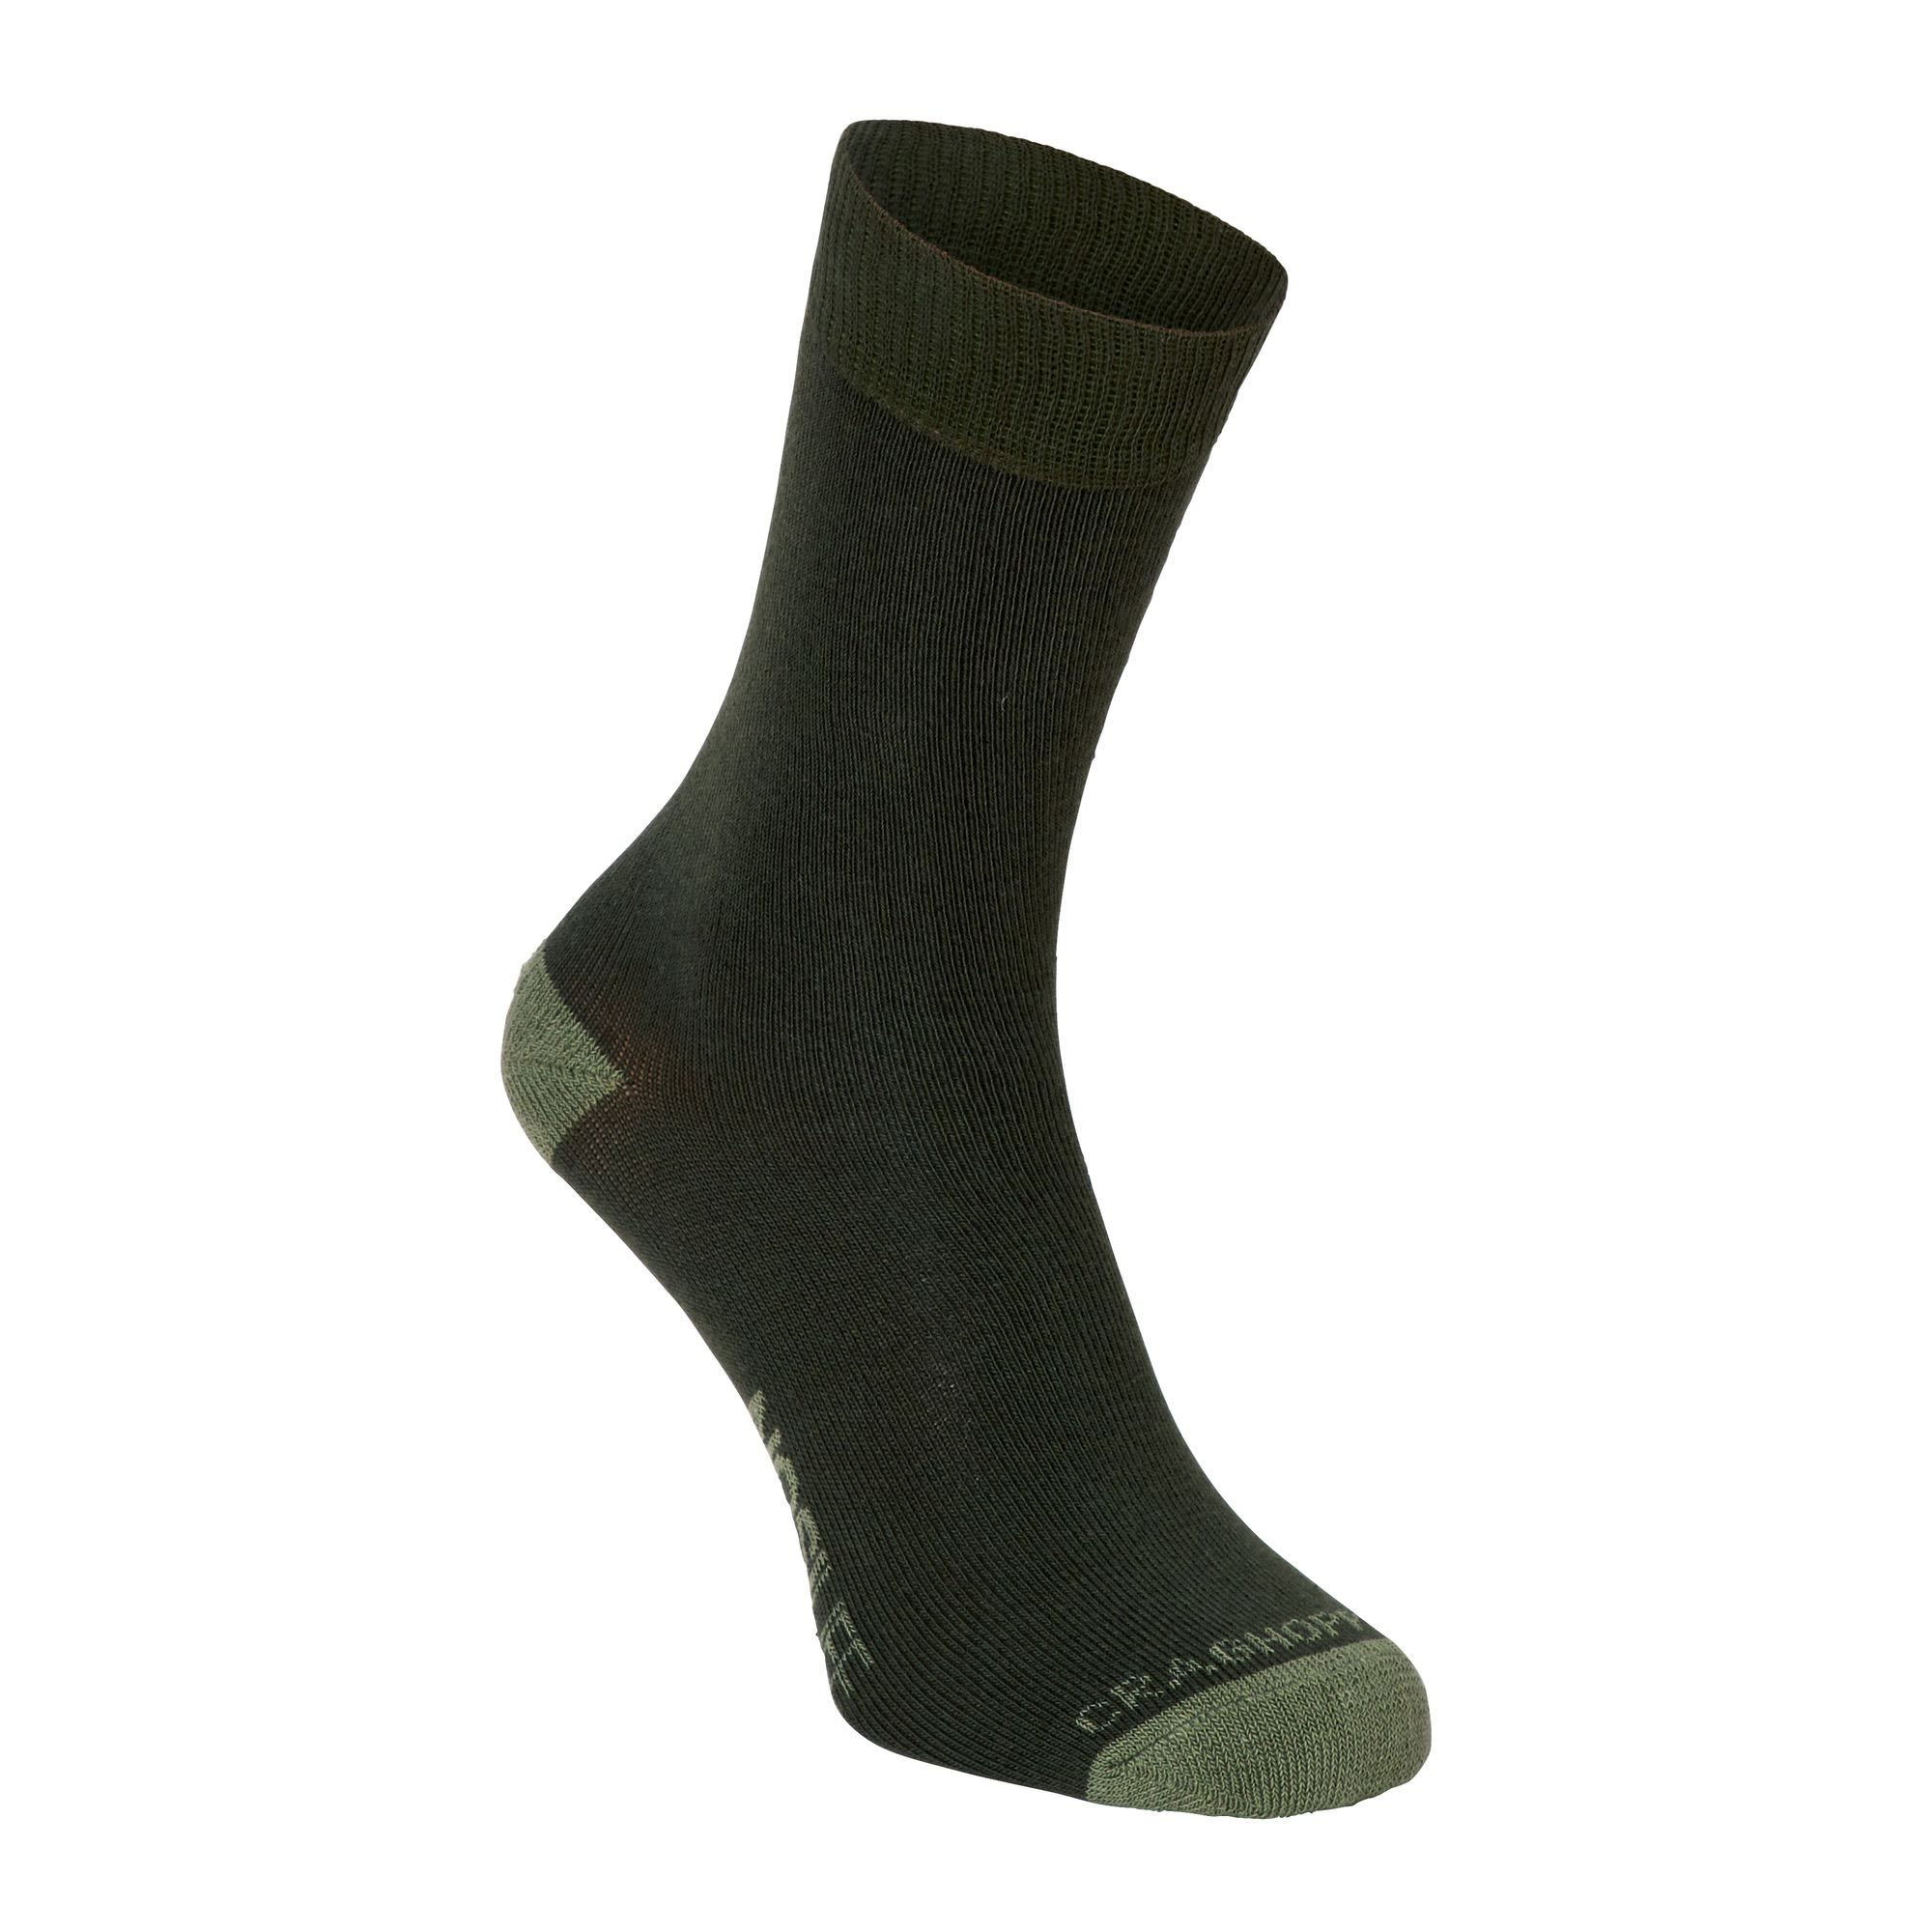 Craghoppers Single Nosilife Travel Socke Grün, Socken, EU 39-42 -UK 6-8